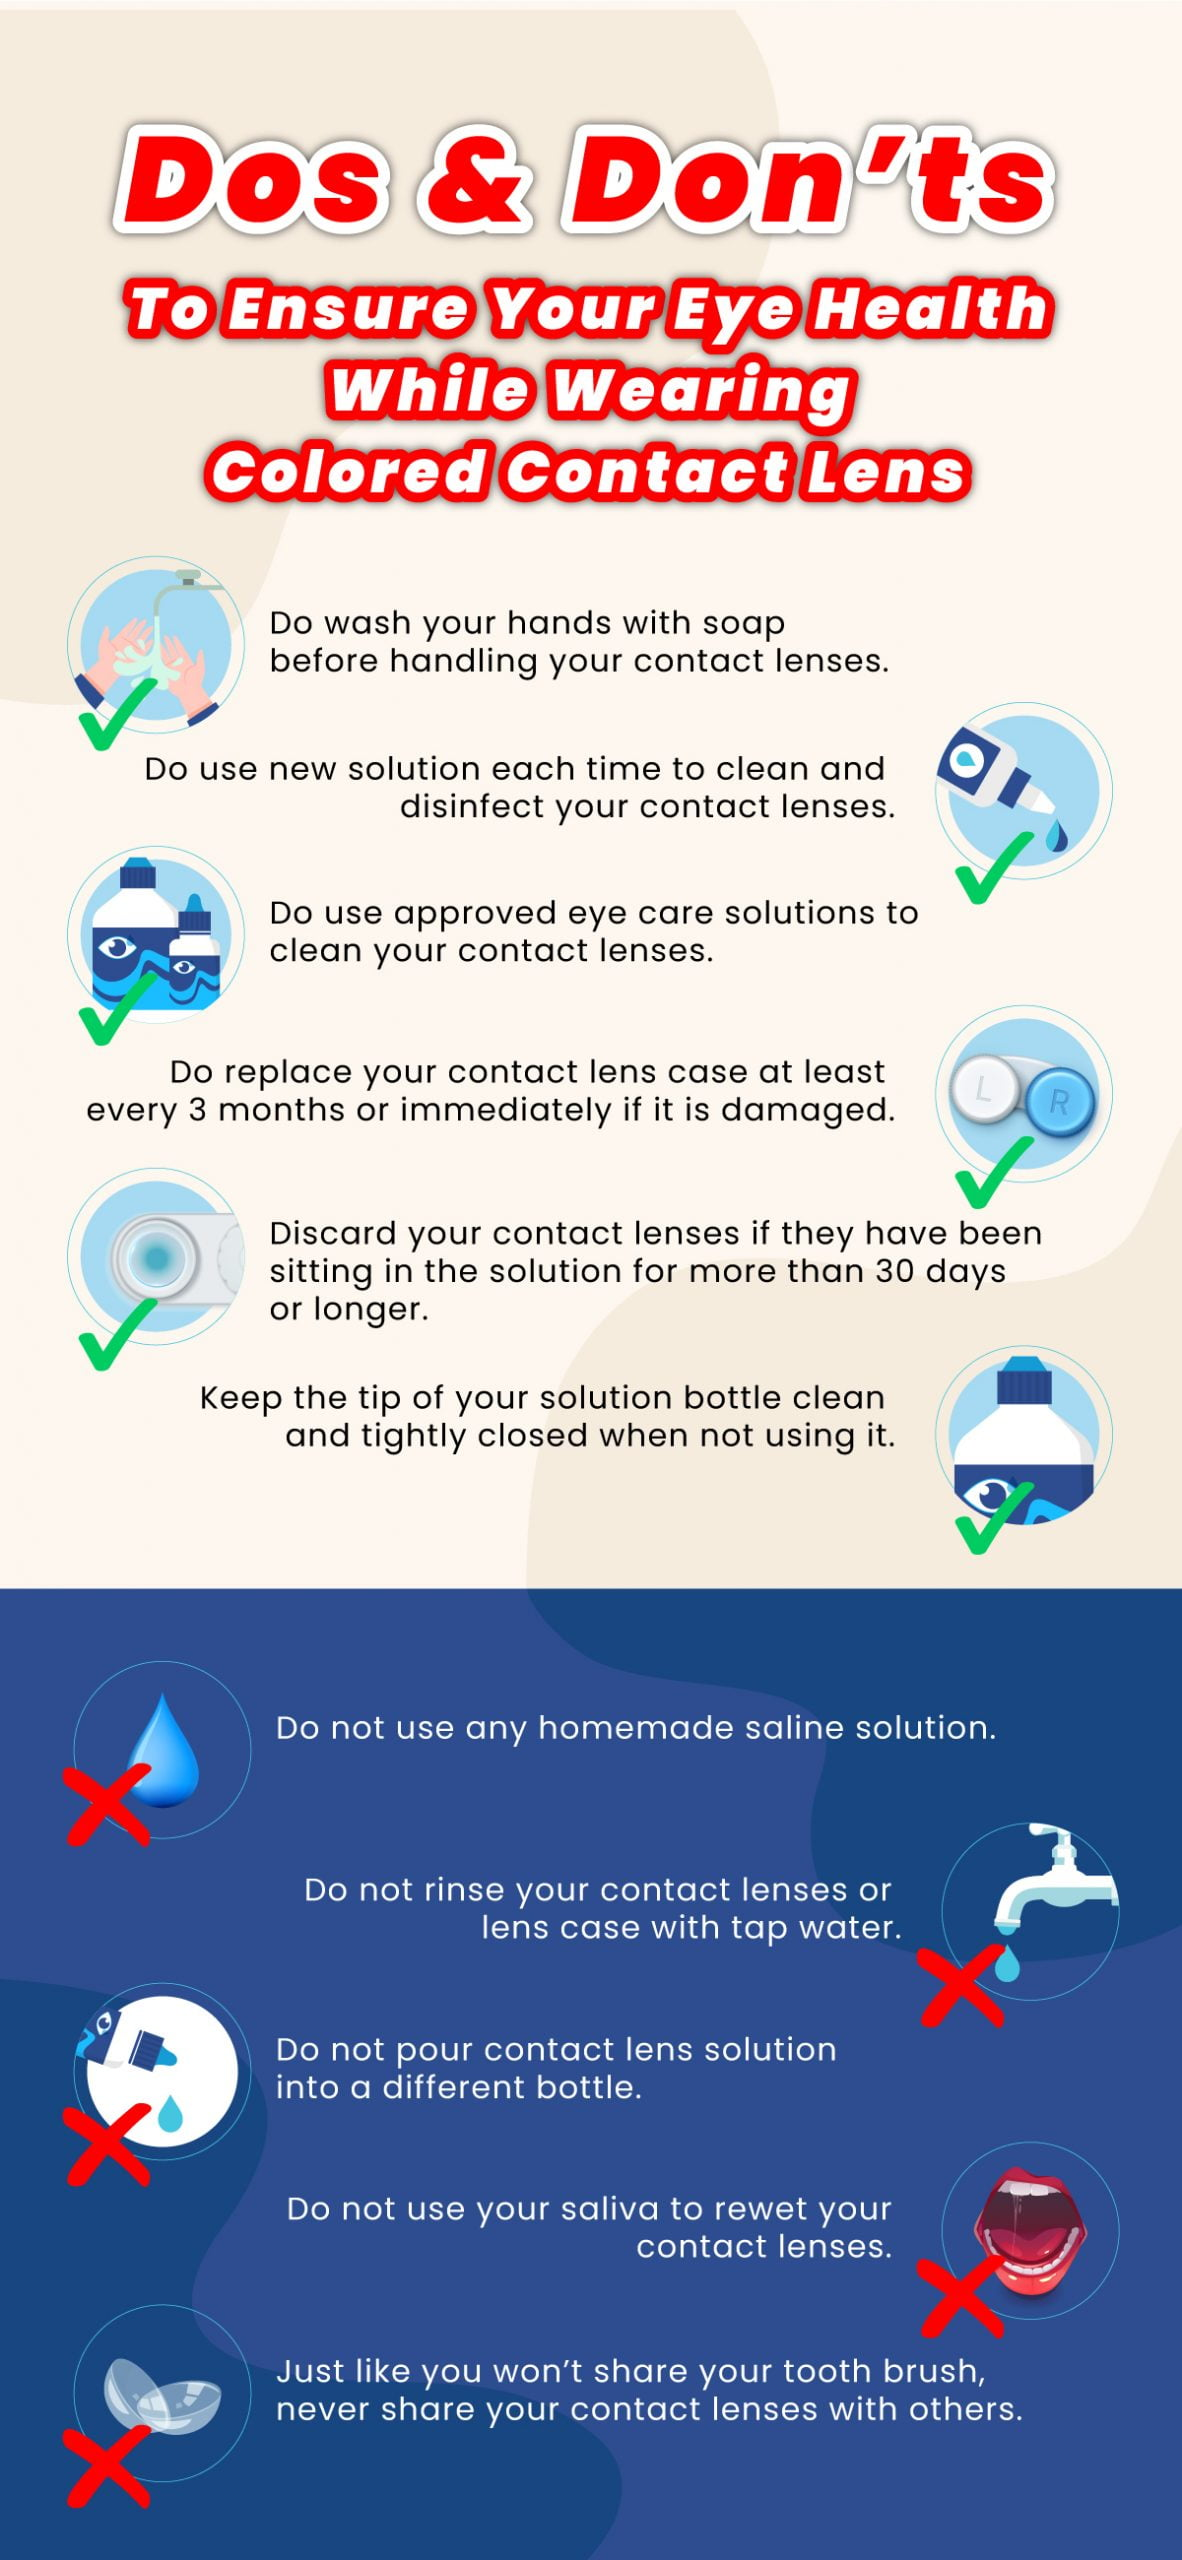 Dos and Don'ts to ensure your eye health while wearing colored contact lens: